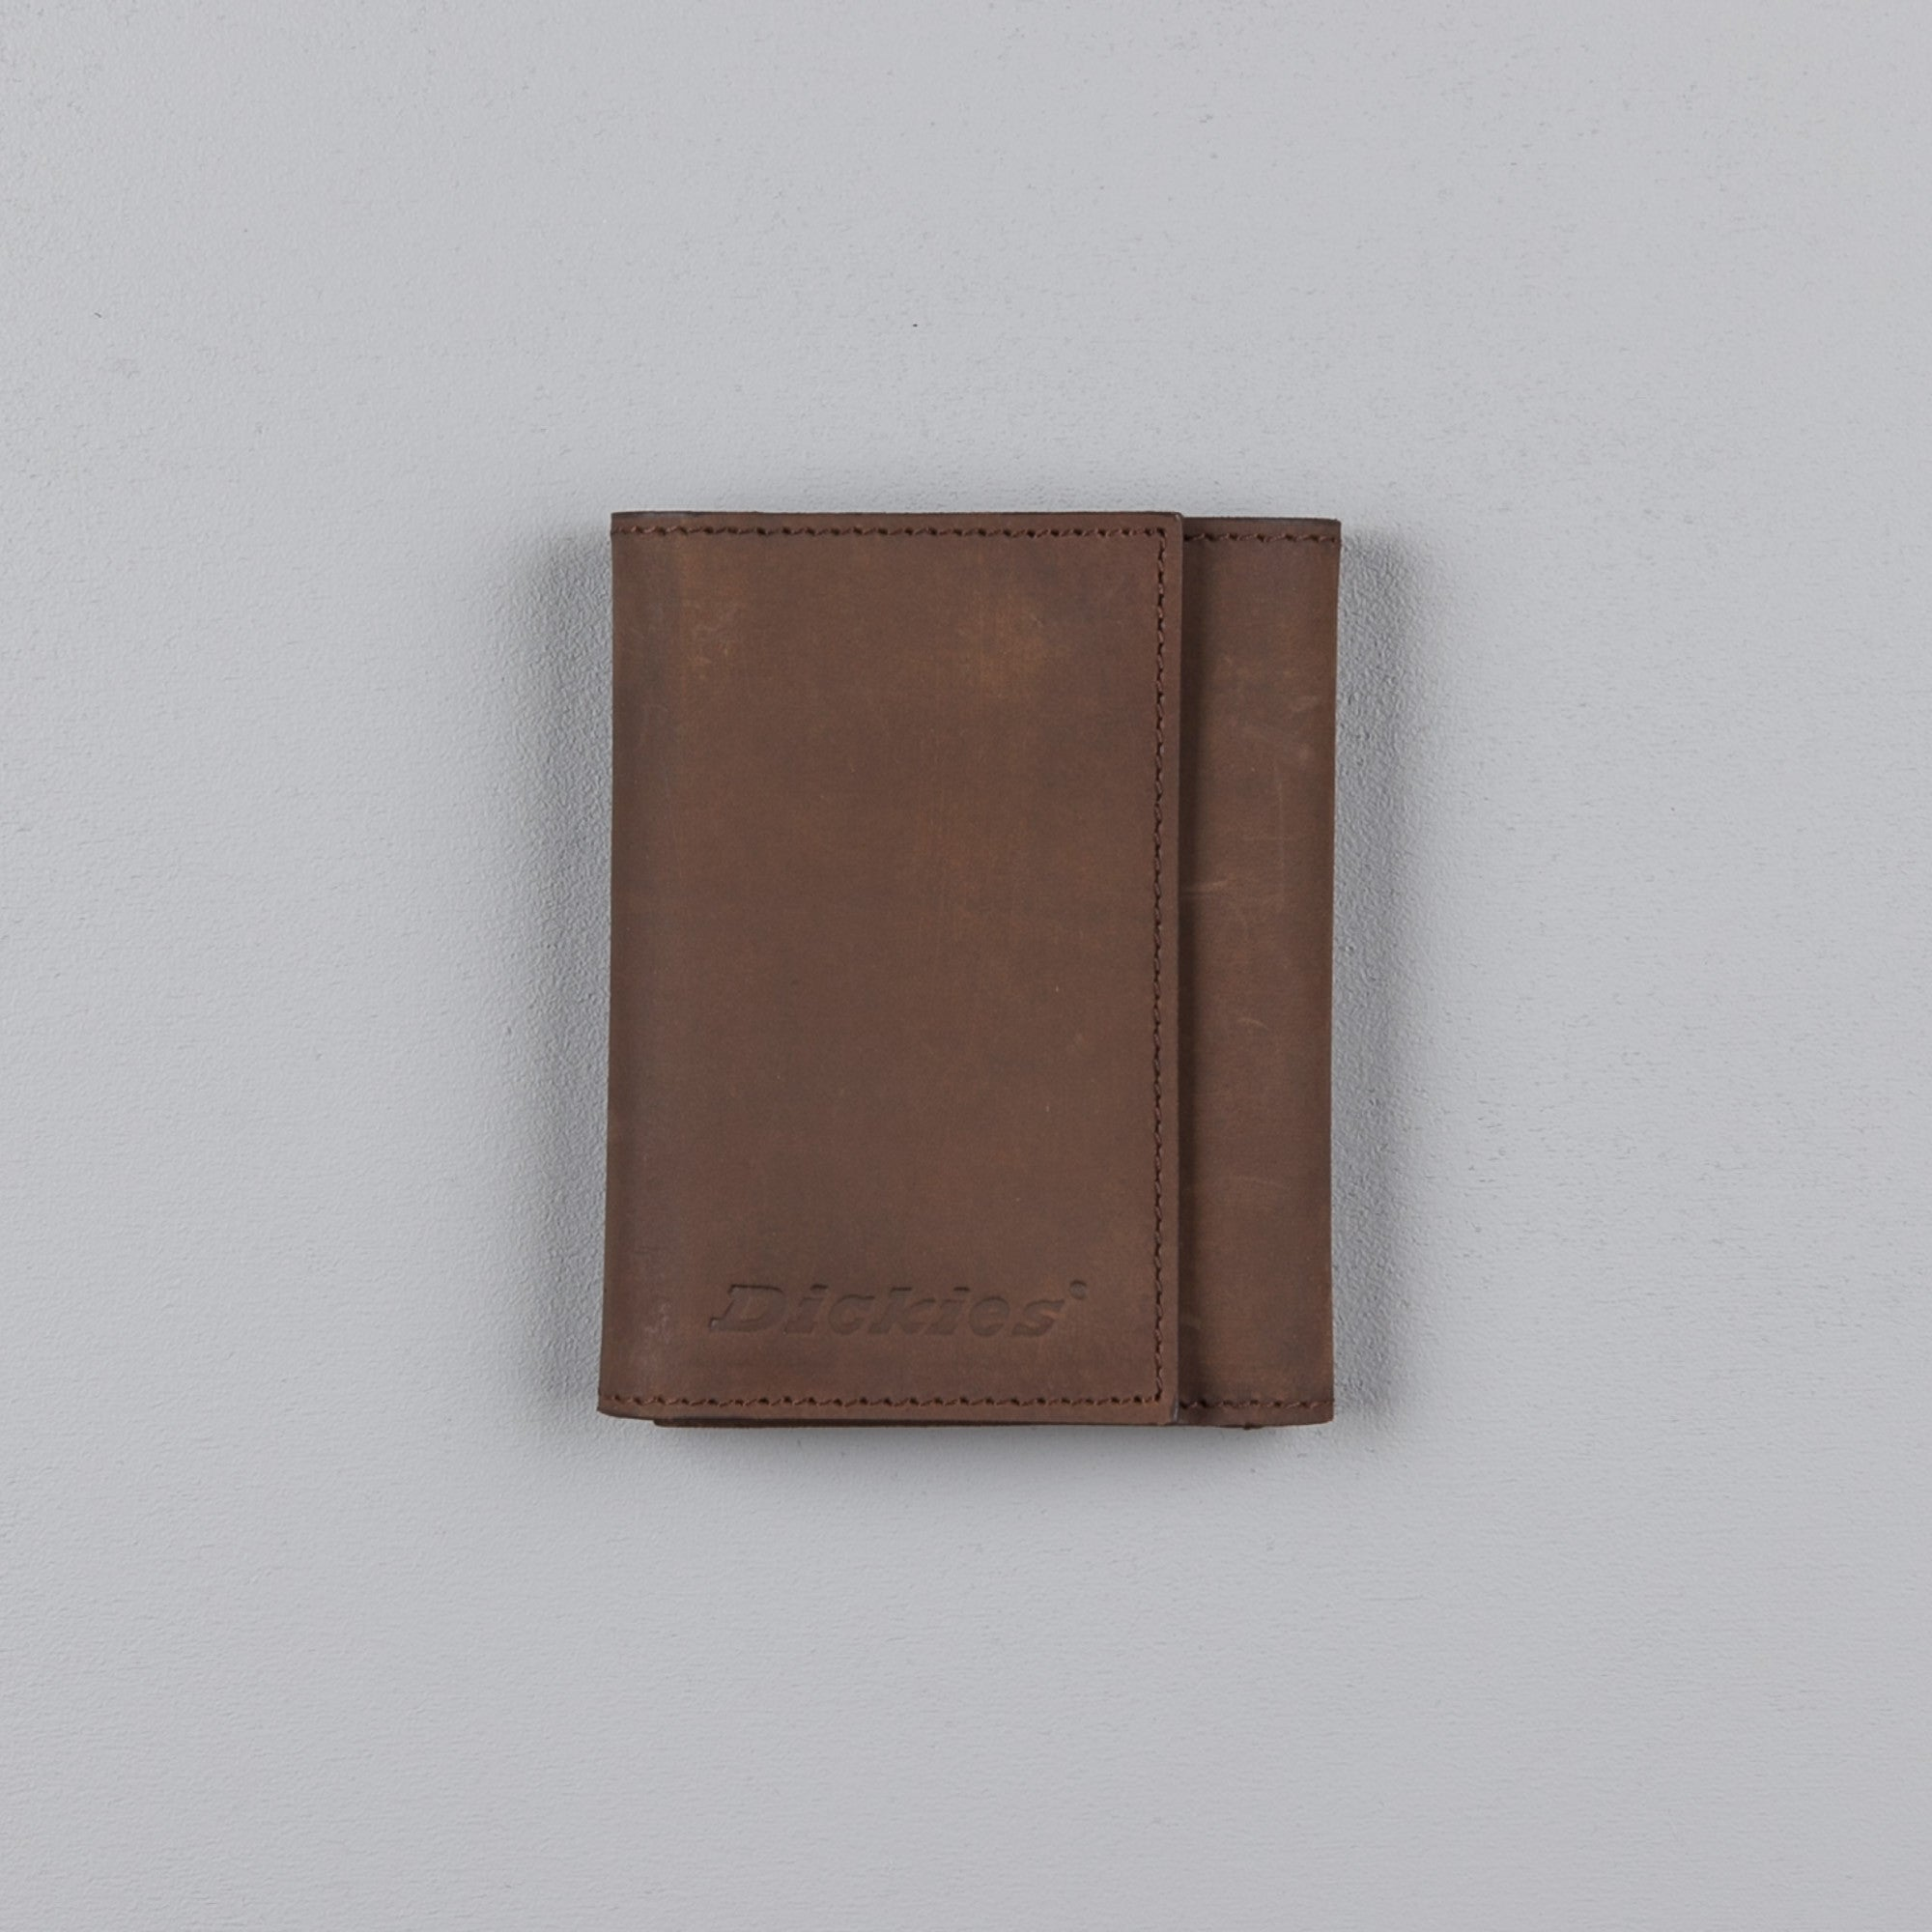 Dickies Owendale Wallet - Brown